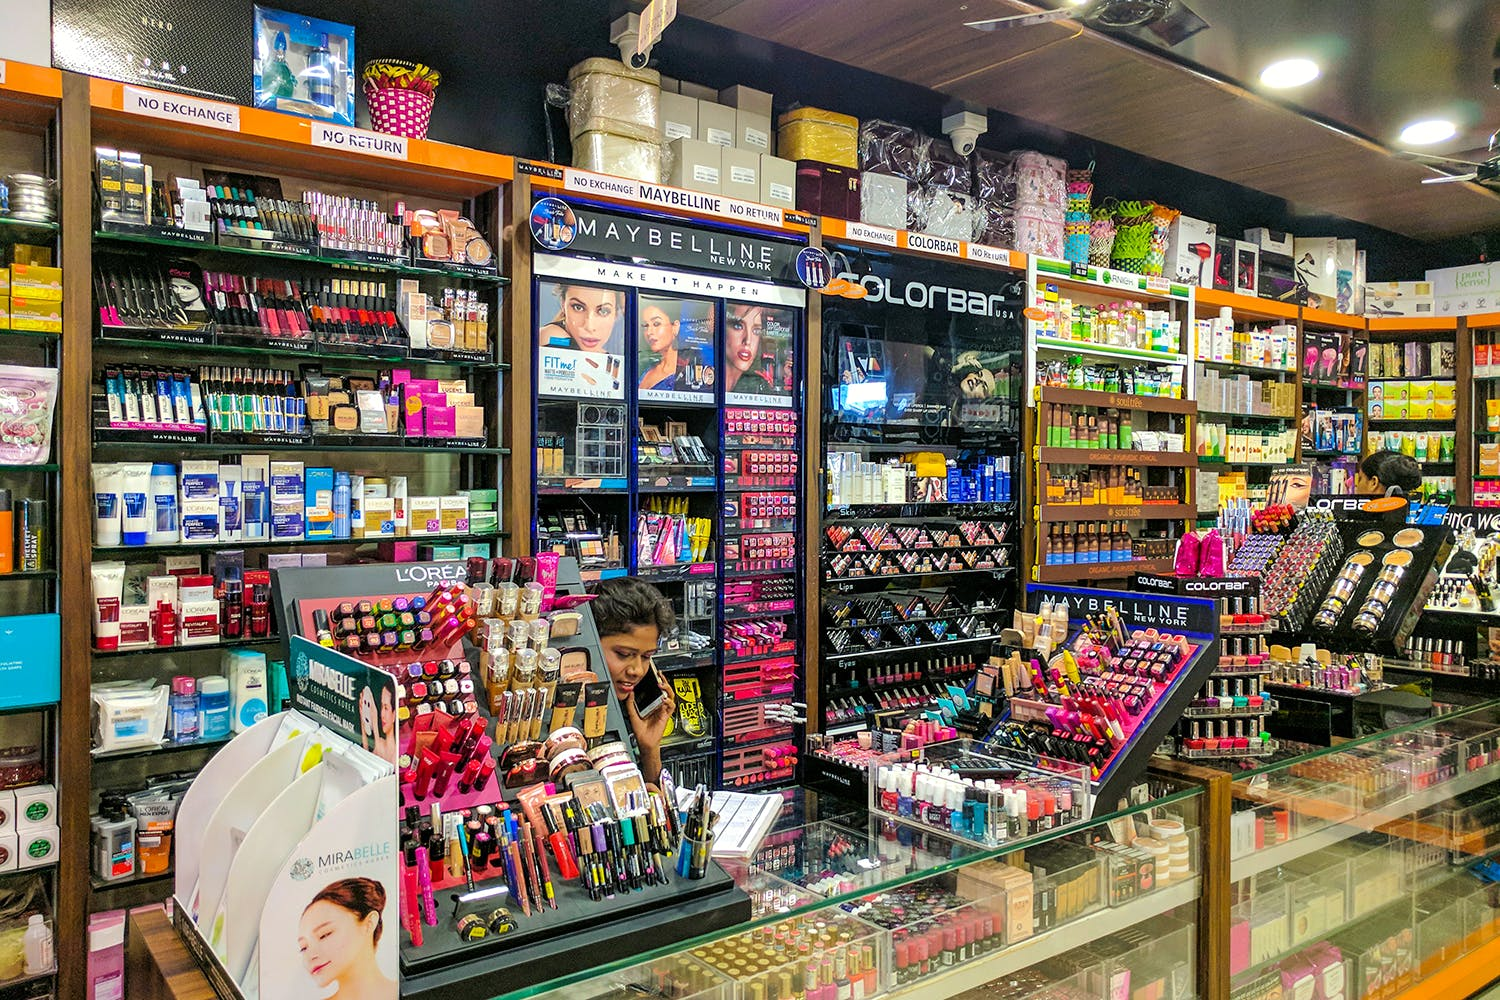 image - Hoard Makeup, Bath & Body Products & Cosmetics From These Stores In Hyderabad